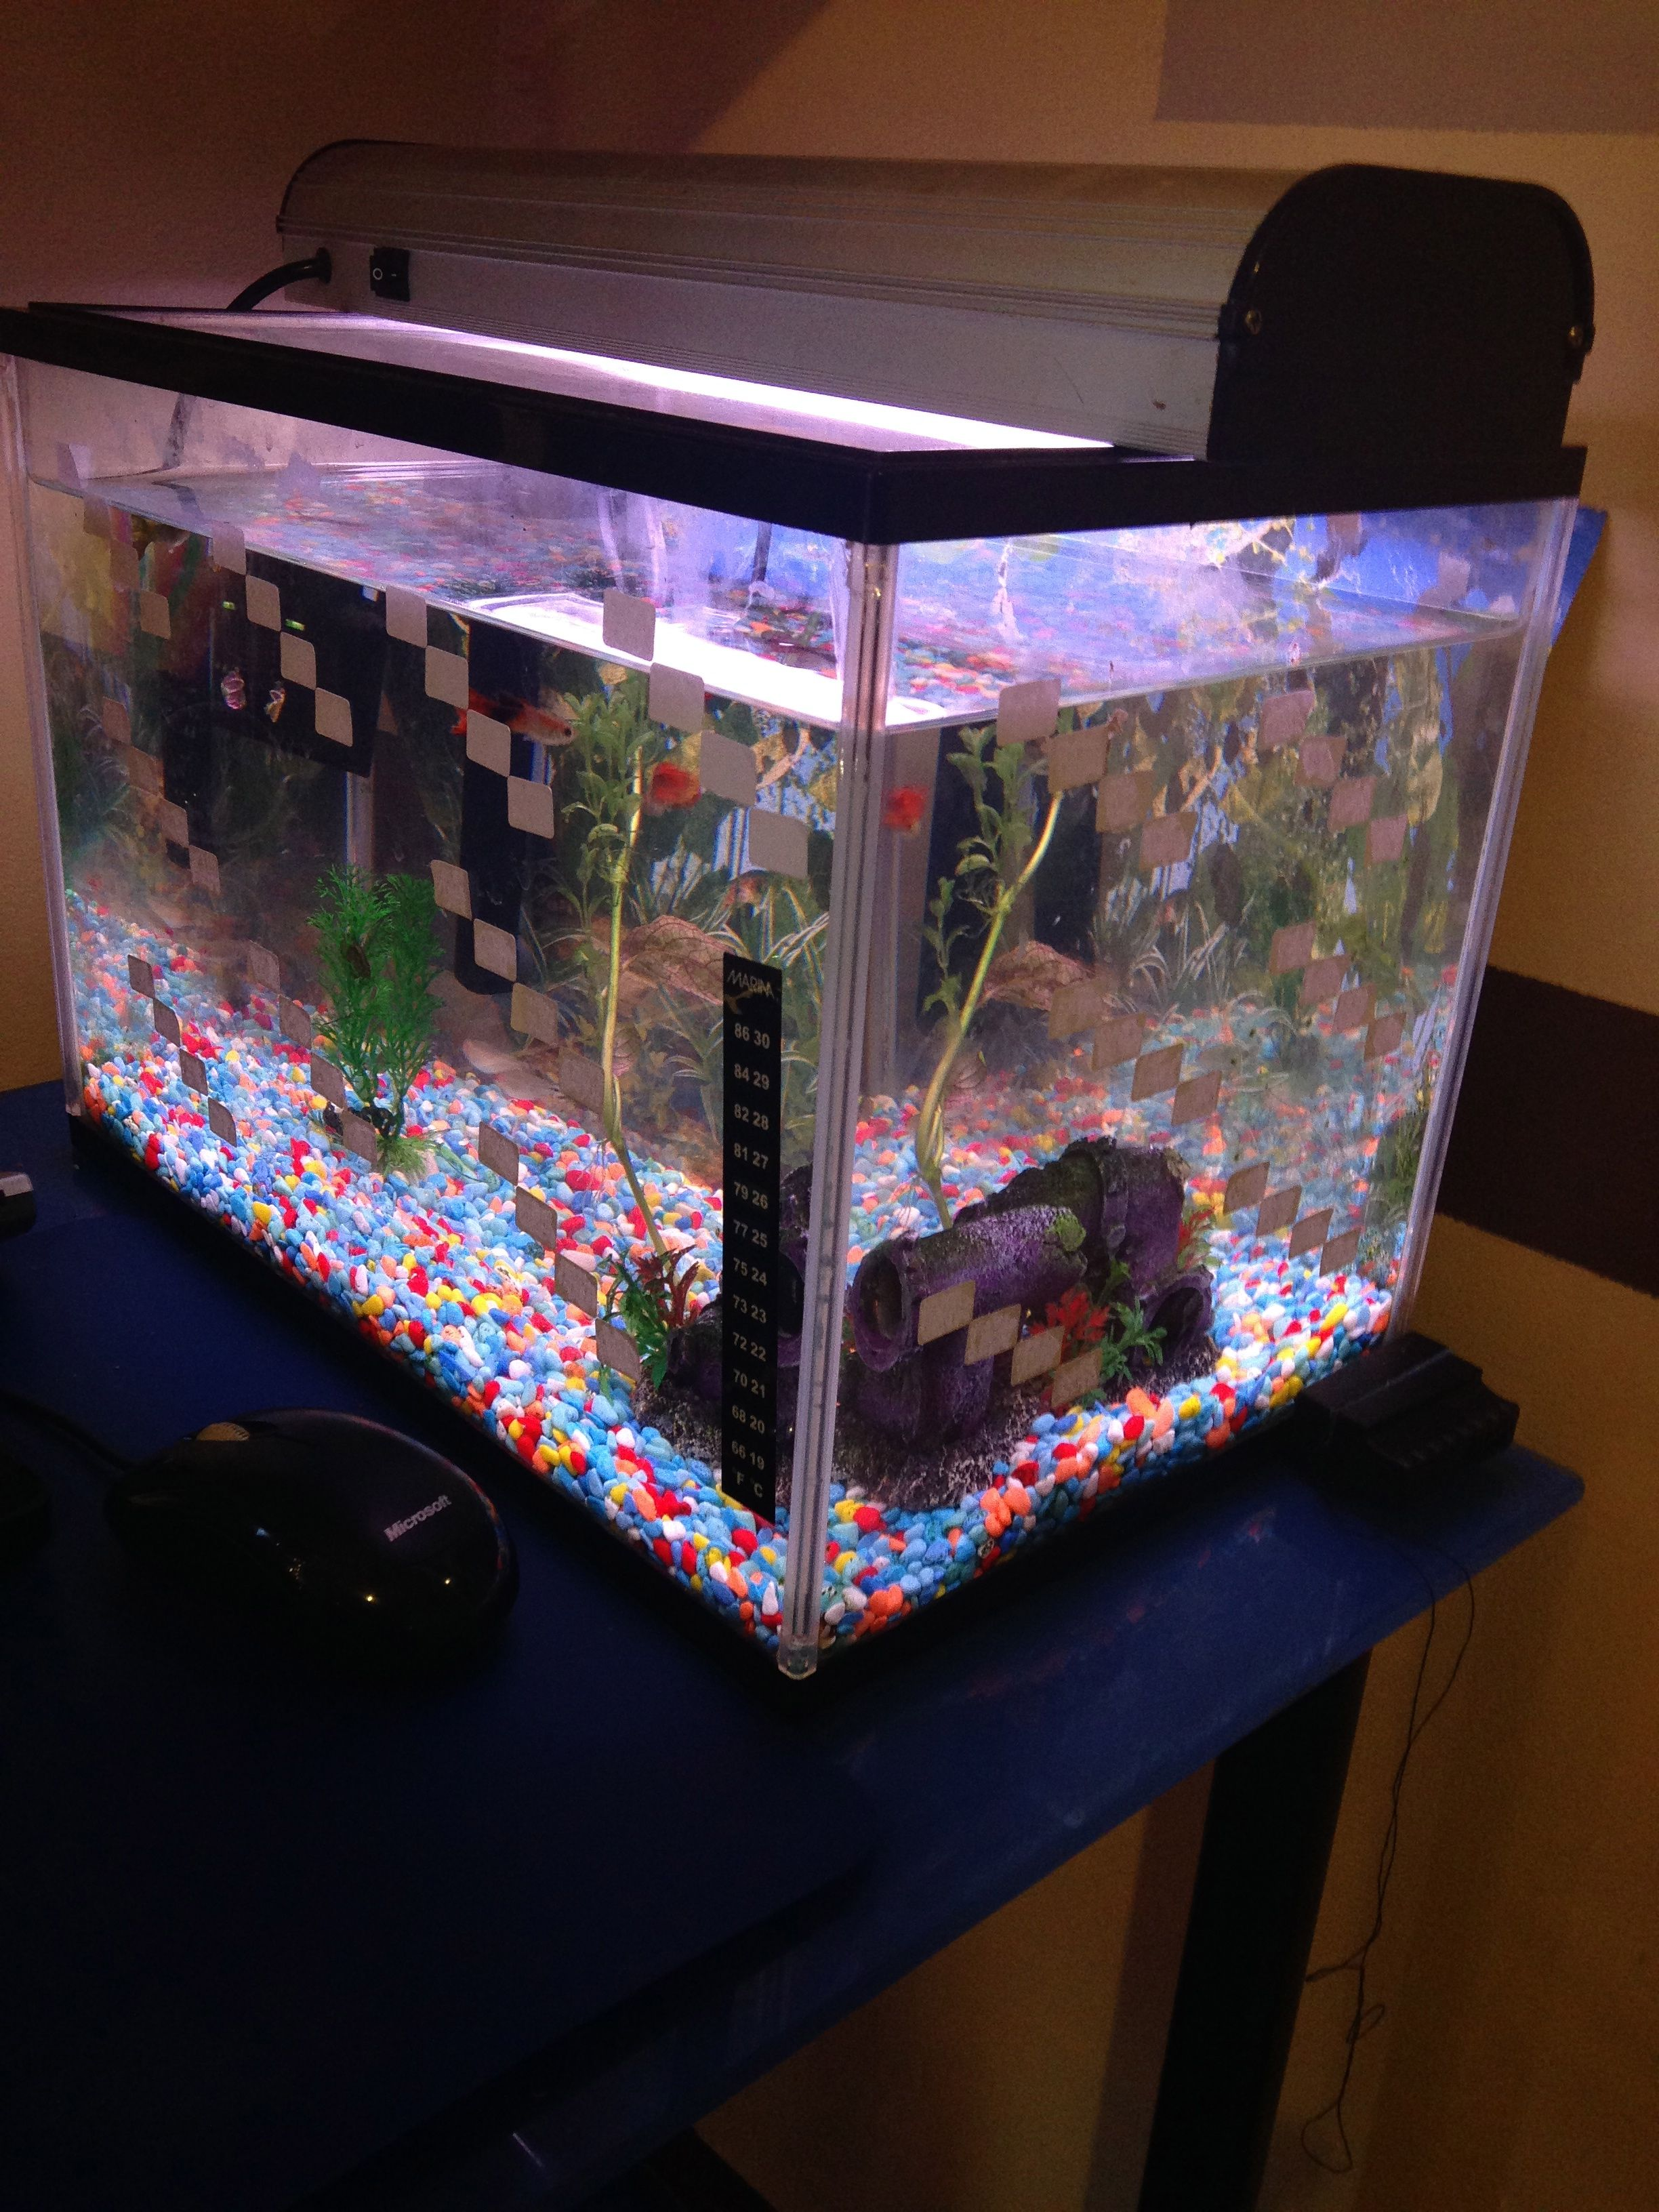 Using white stickers to make the fish tank look like for Fish tank bedroom ideas